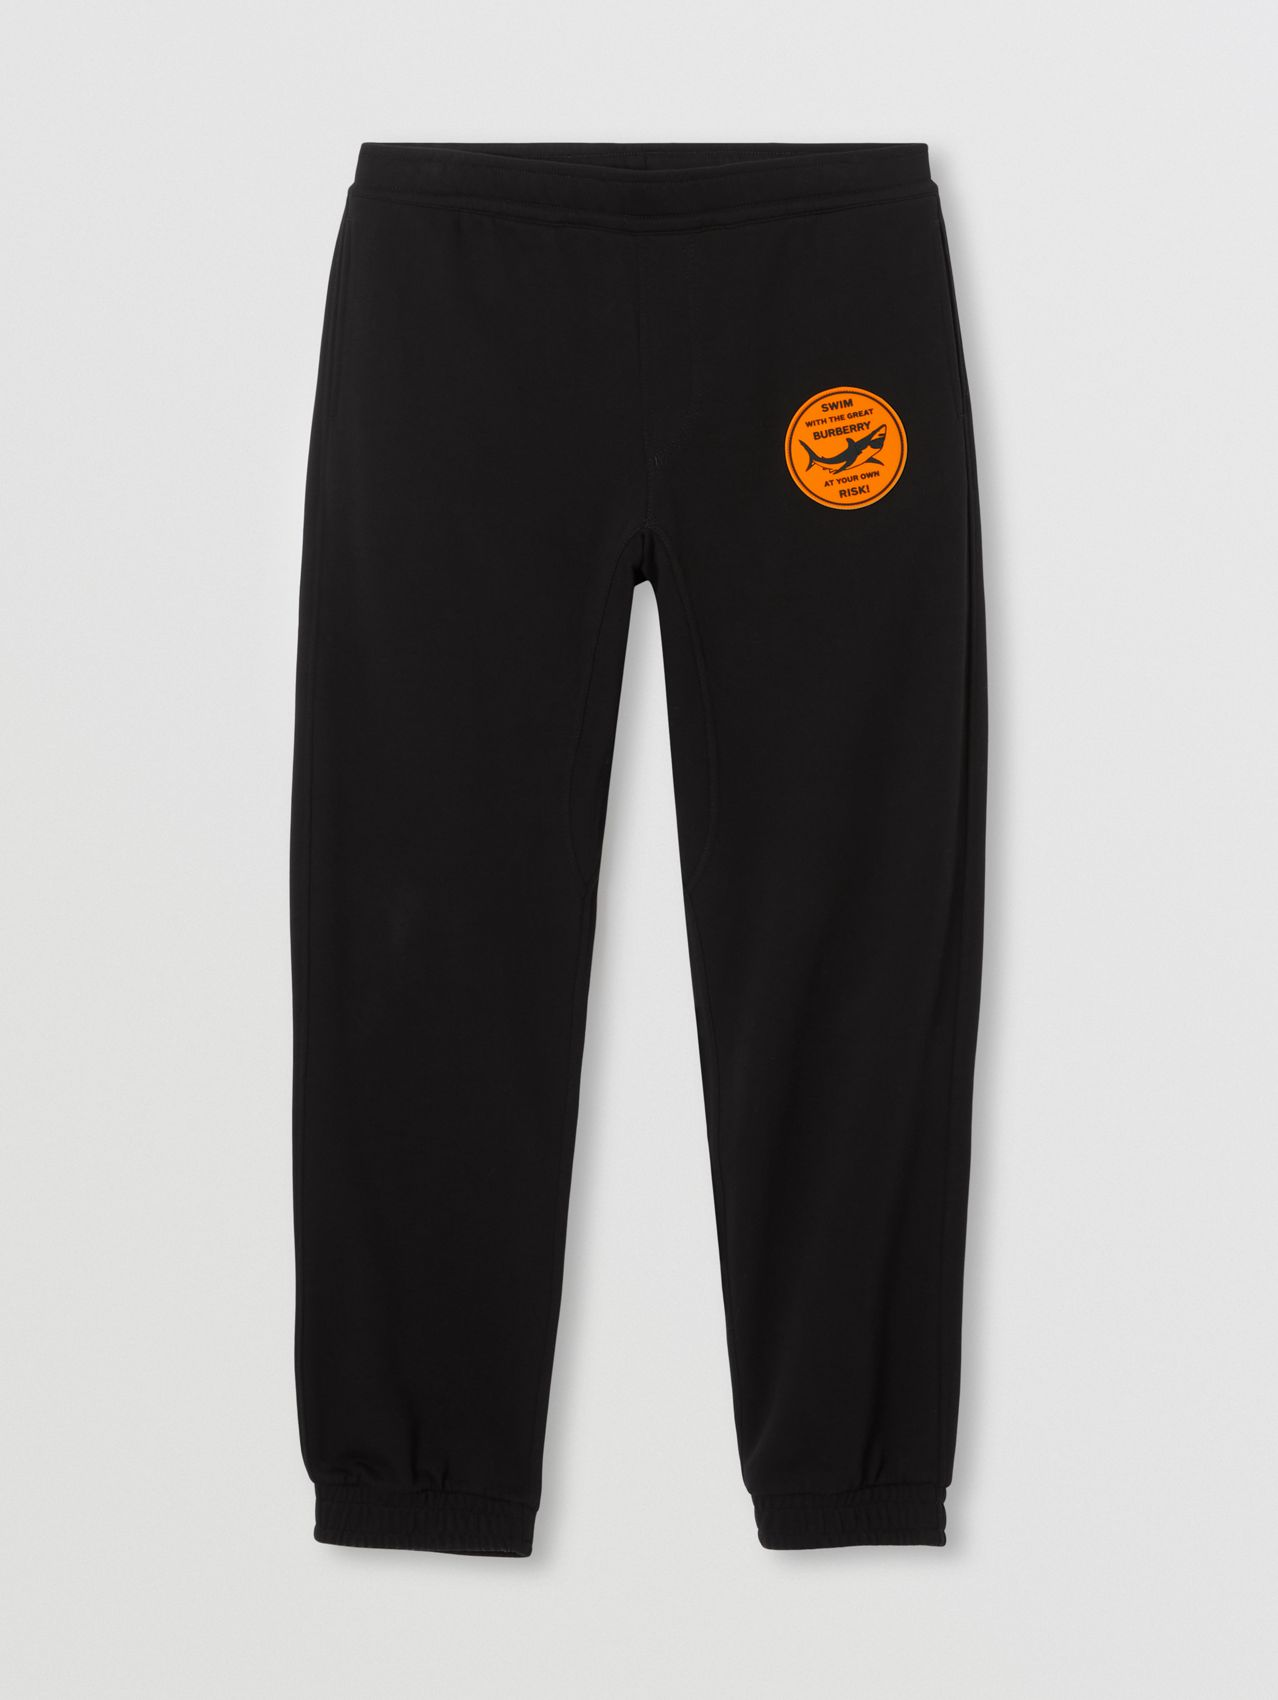 Shark Graphic Appliqué Cotton Jogging Pants in Black